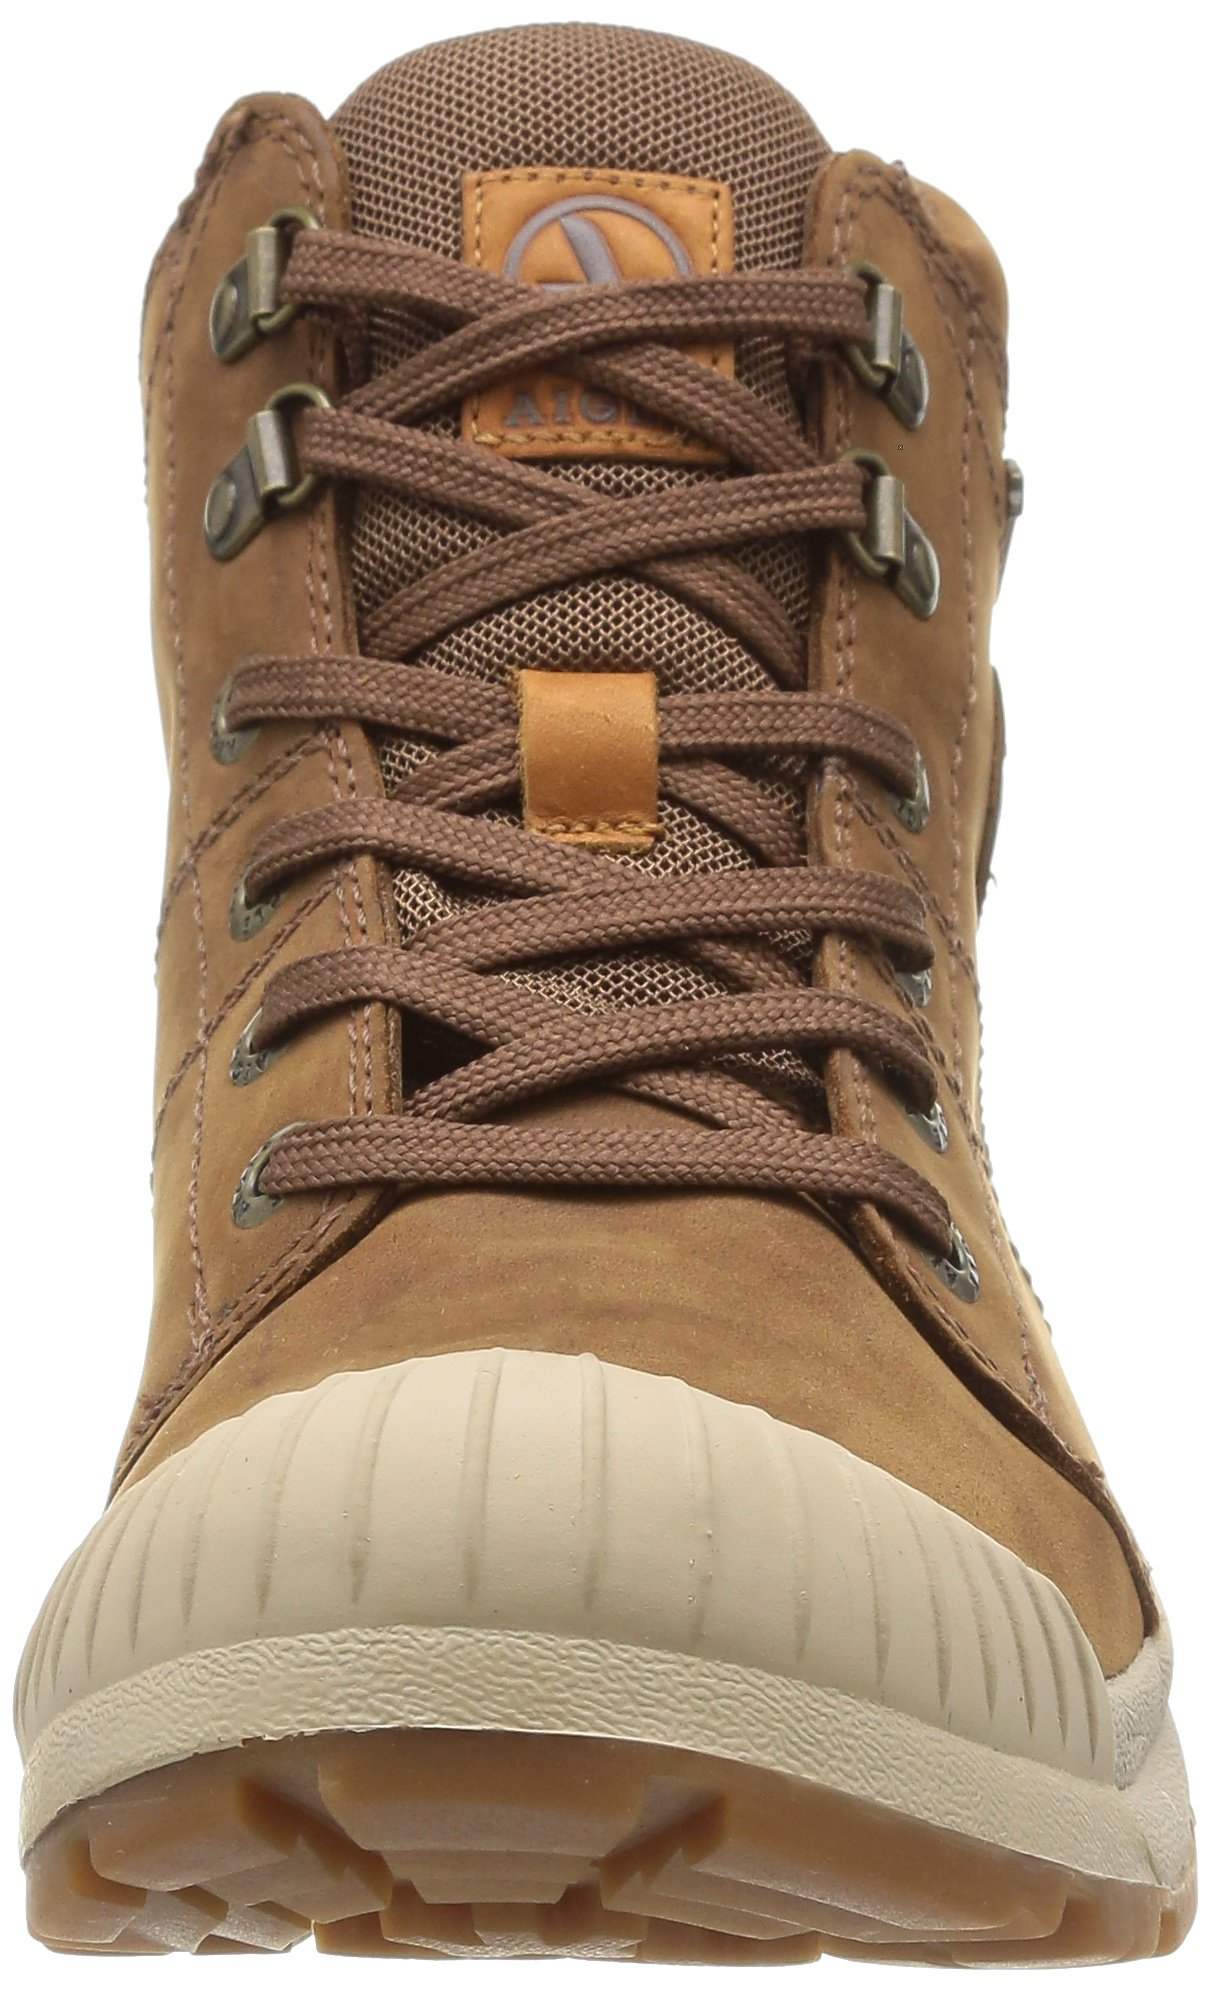 5cbeef0f424 Aigle Men's Tenere Leather & GTX High Rise Hiking Shoes | Tackle Search